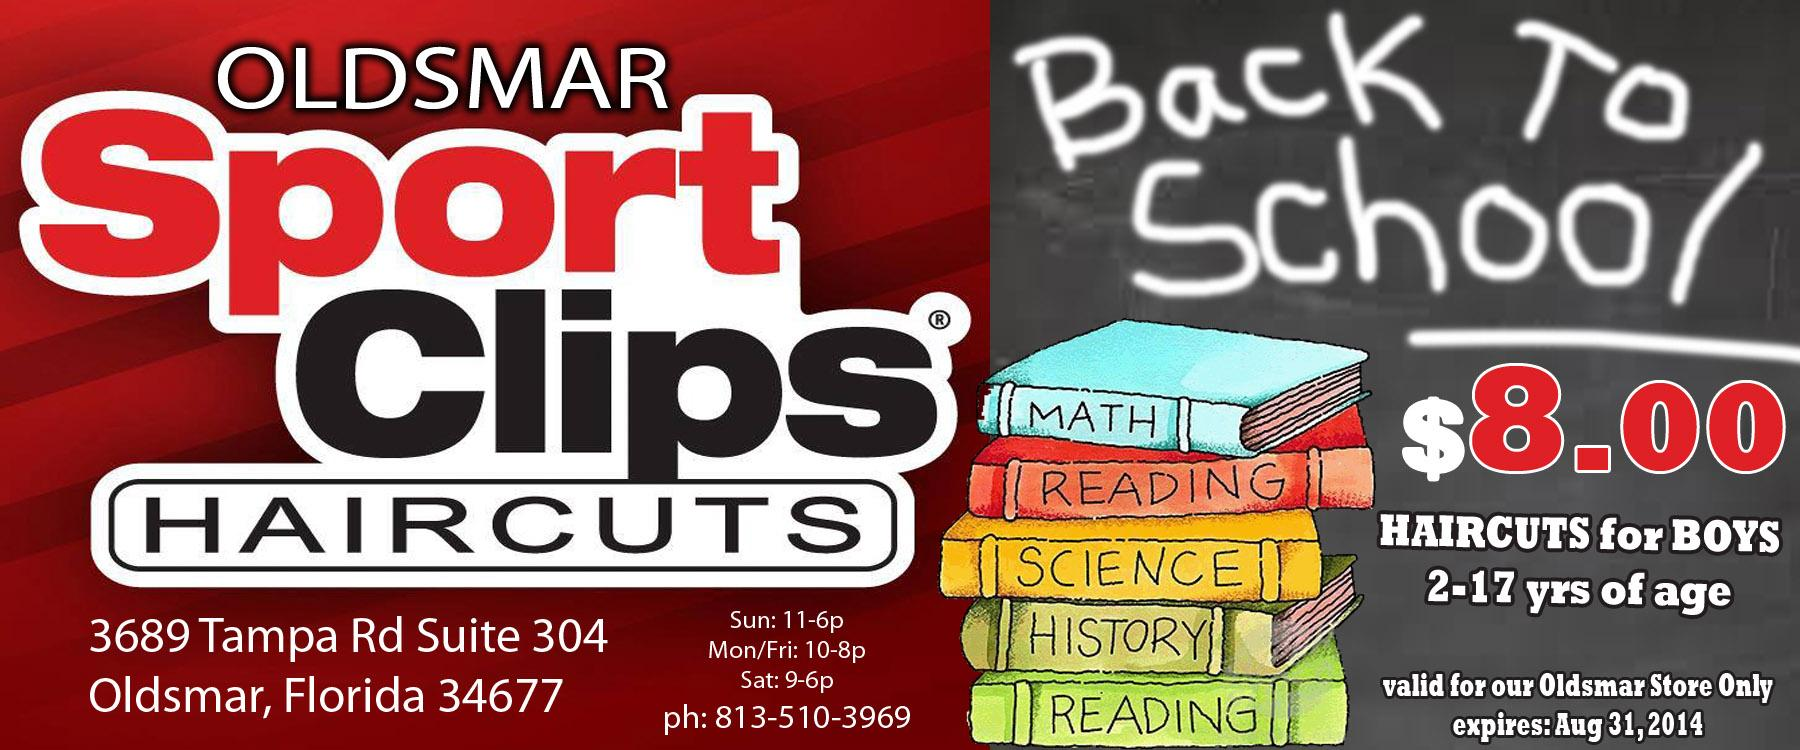 back to school haircut specials sport oldsmar sportclipsfl114 1761